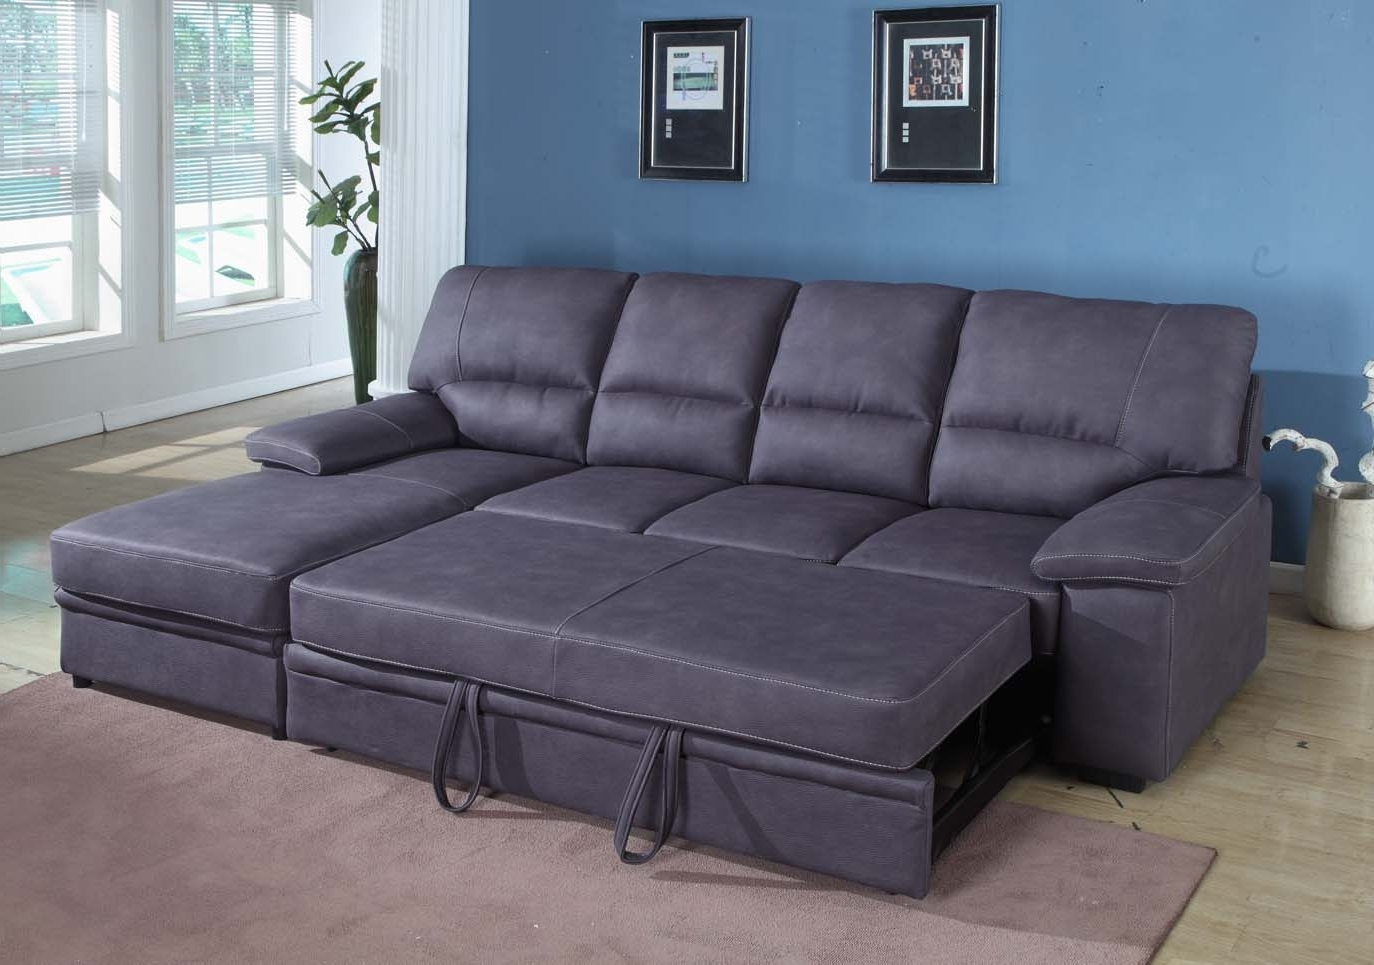 Grey Sleeper Sectional Sofa (View 7 of 15)